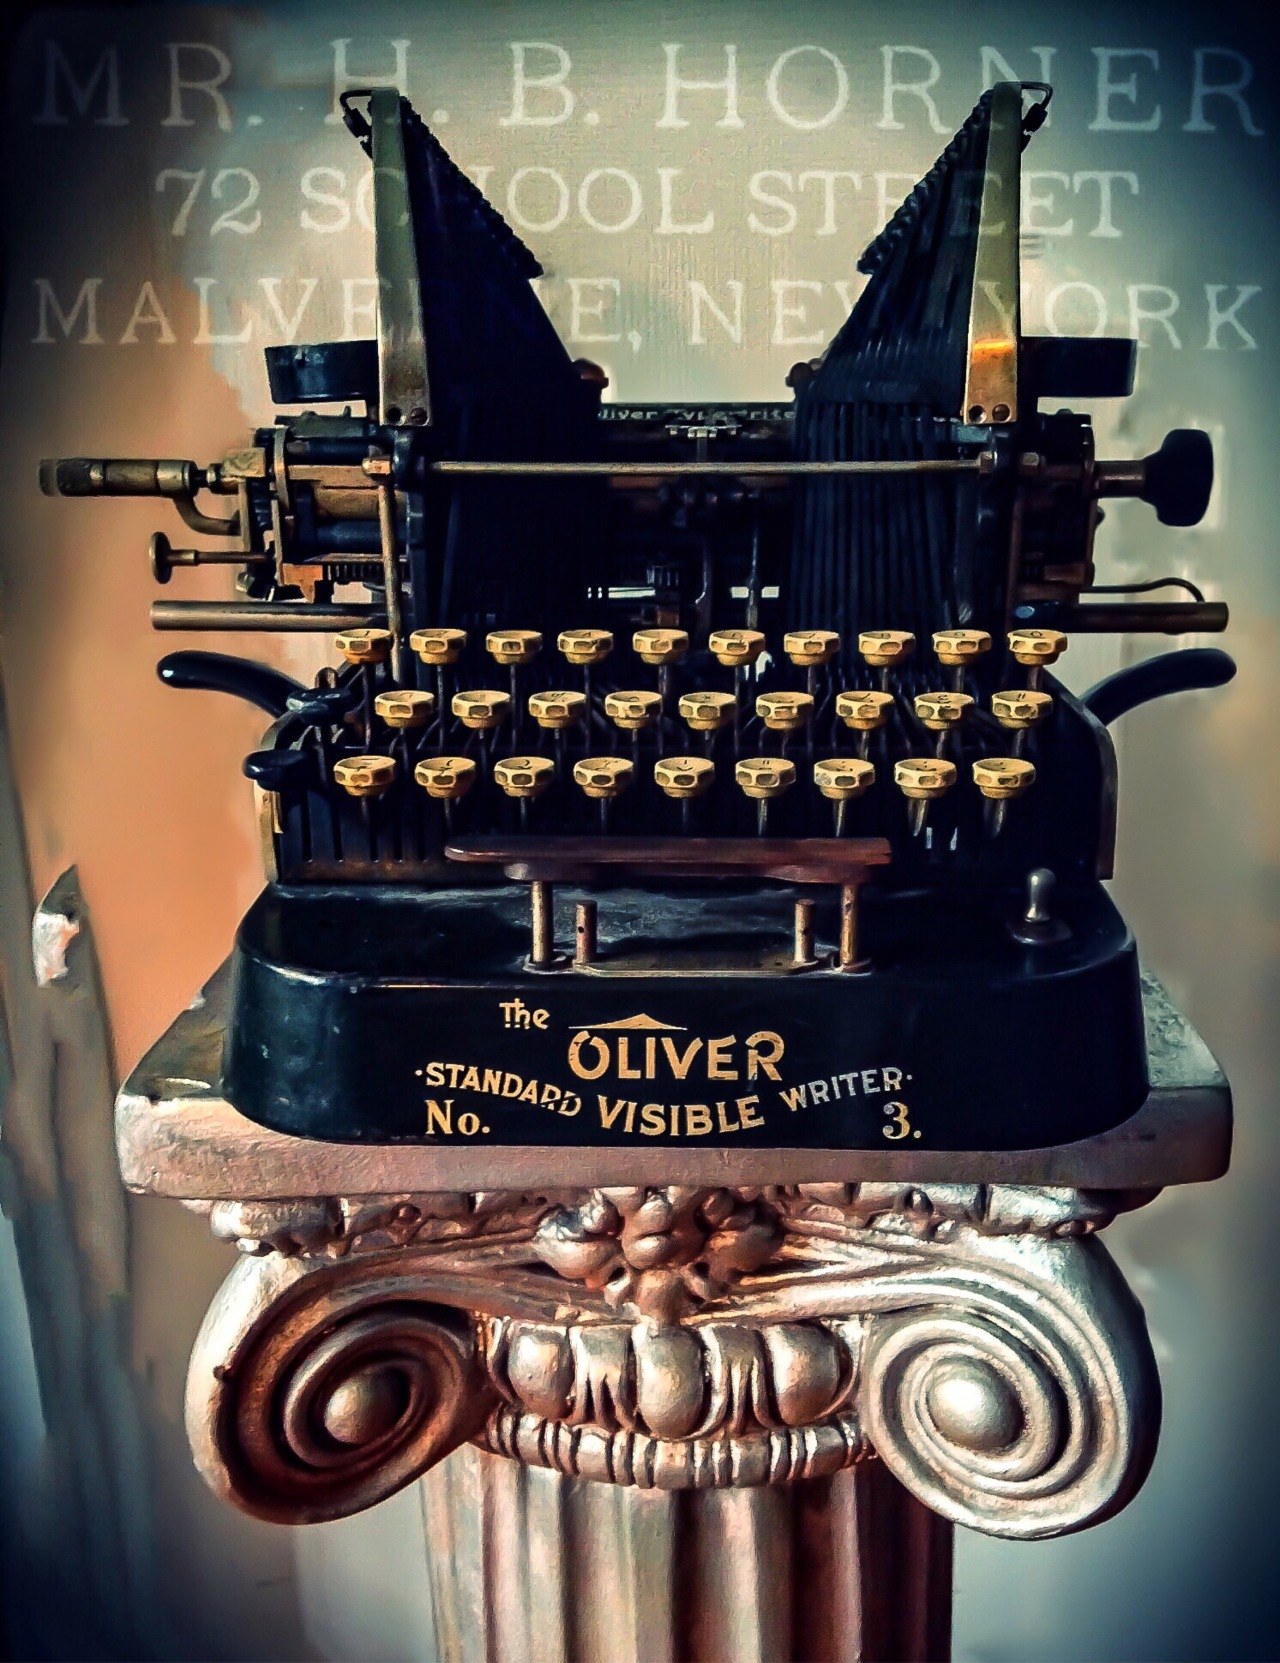 Oliver Typewriter No. 3